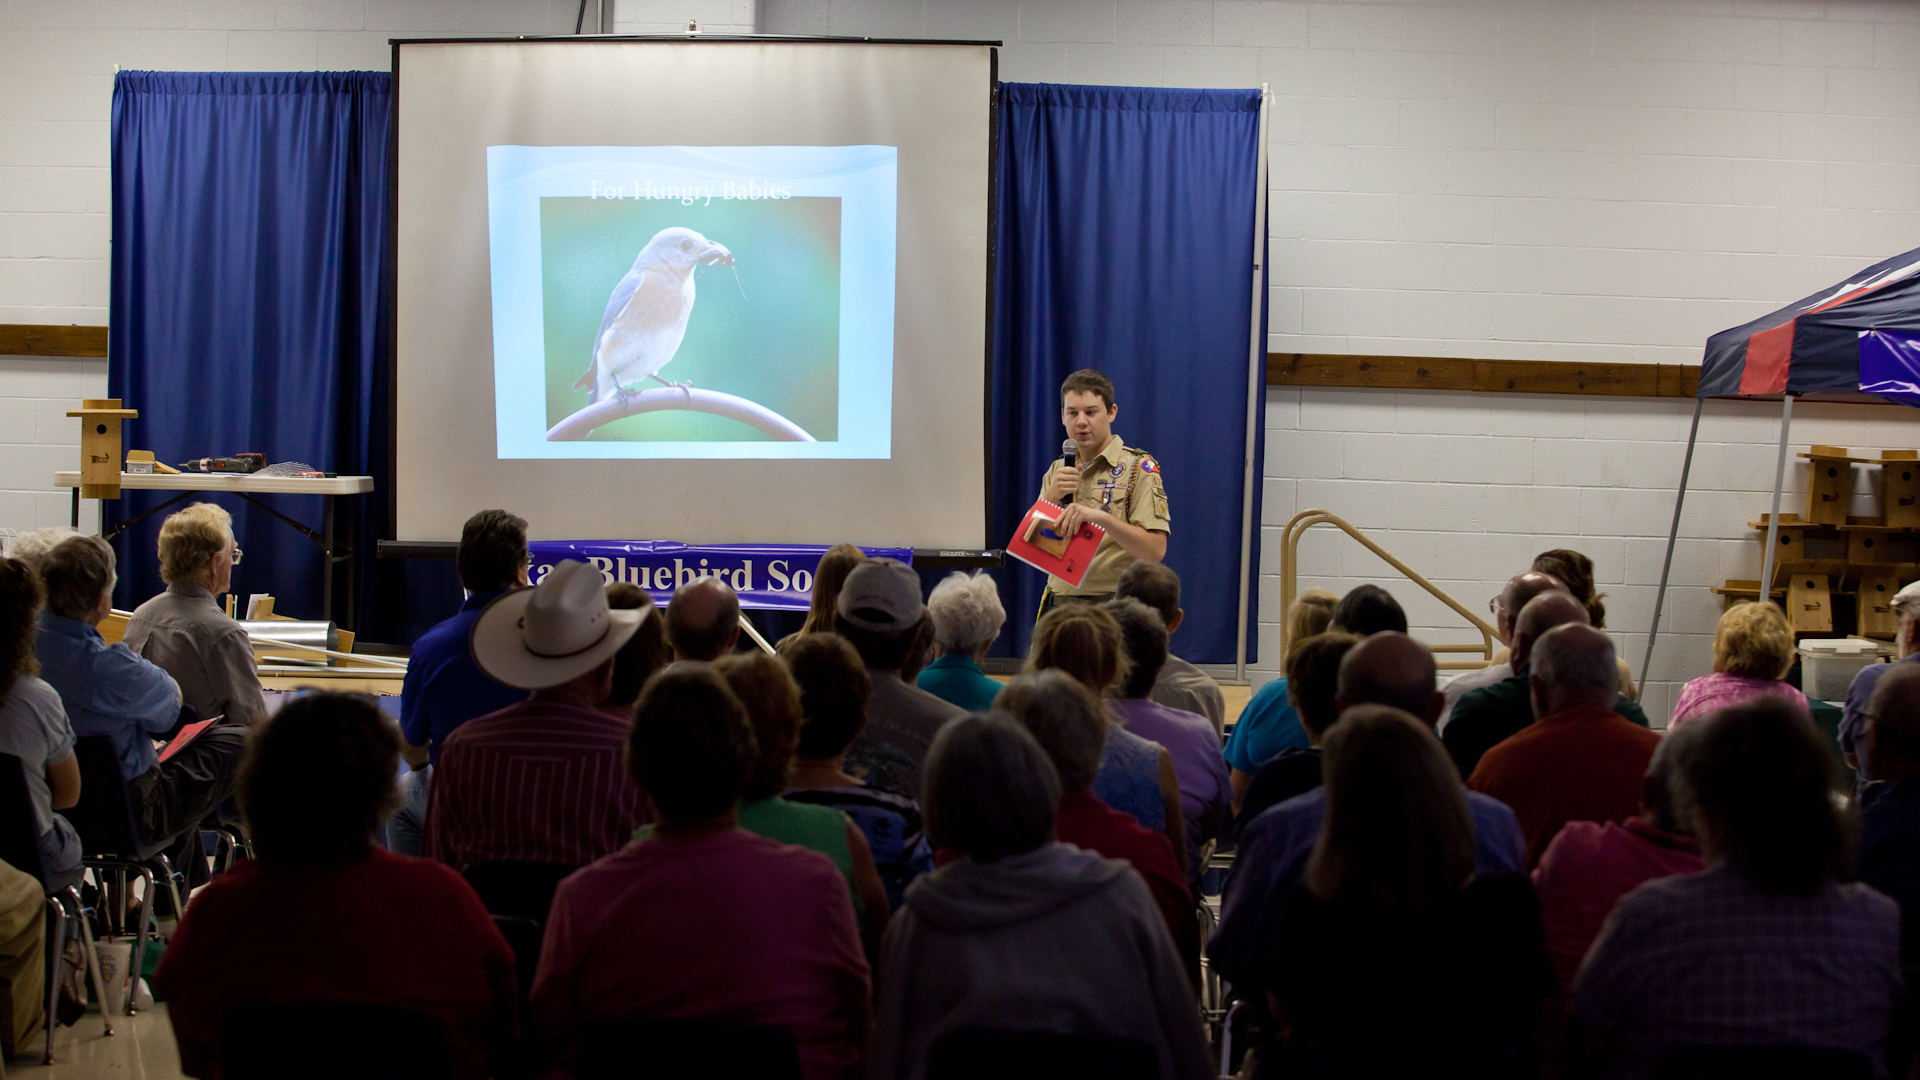 William T. Hornaday Conservation Award Winner and Eagle Scout delivering informative speech about the importance of nest-boxes and promoting the interests of the Texas Bluebird Society at their 10th Annual Meeting and Convention in Glen Rose, Texas on August 20, 2011. TBS is an active interest group advocating on behalf of the protection of Eastern Bluebirds and their habitat.